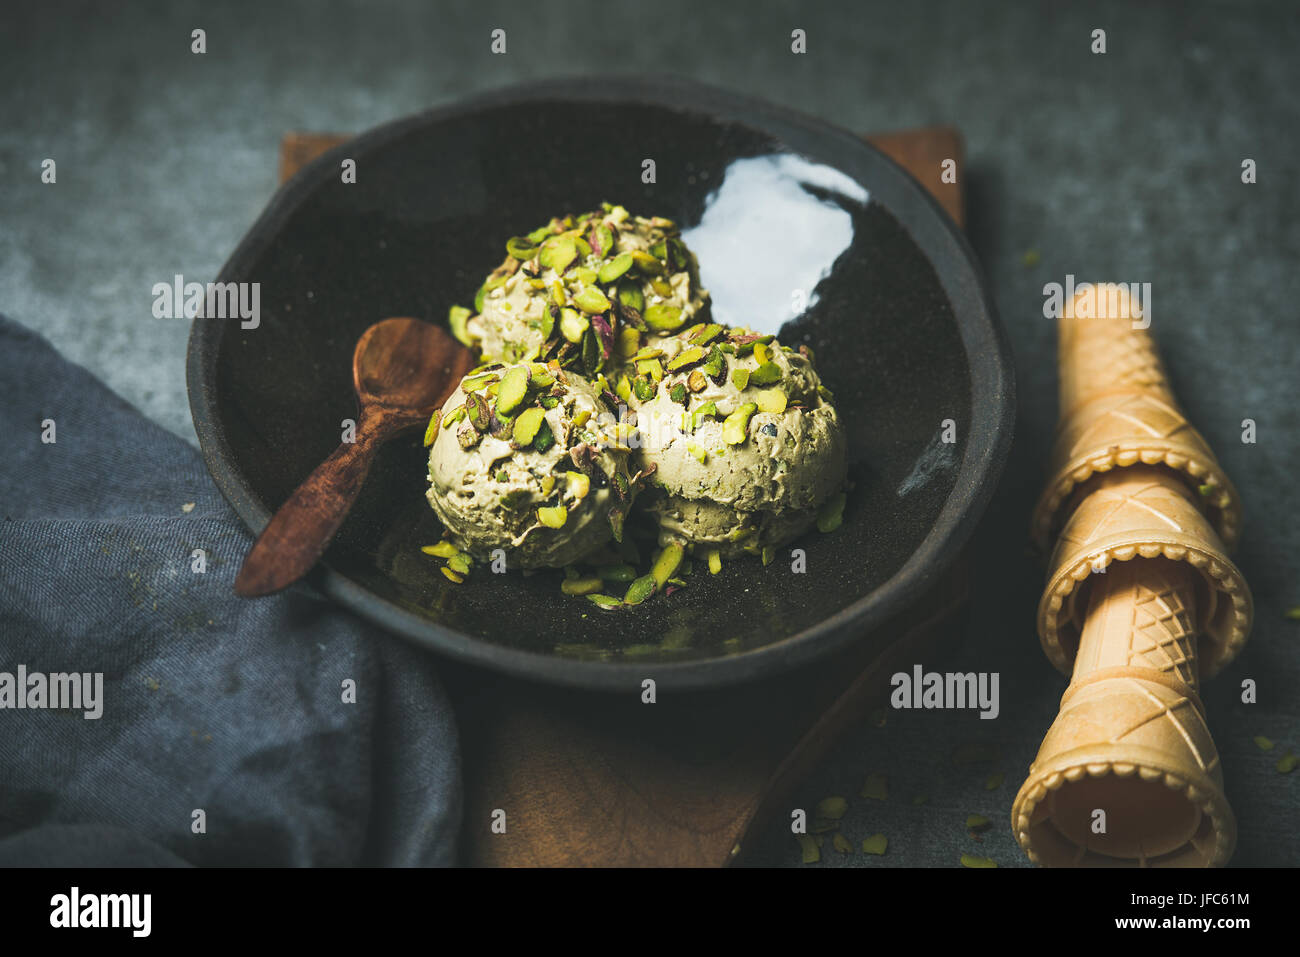 Homemade pistachio ice cream scoops with crashed nuts in plate - Stock Image